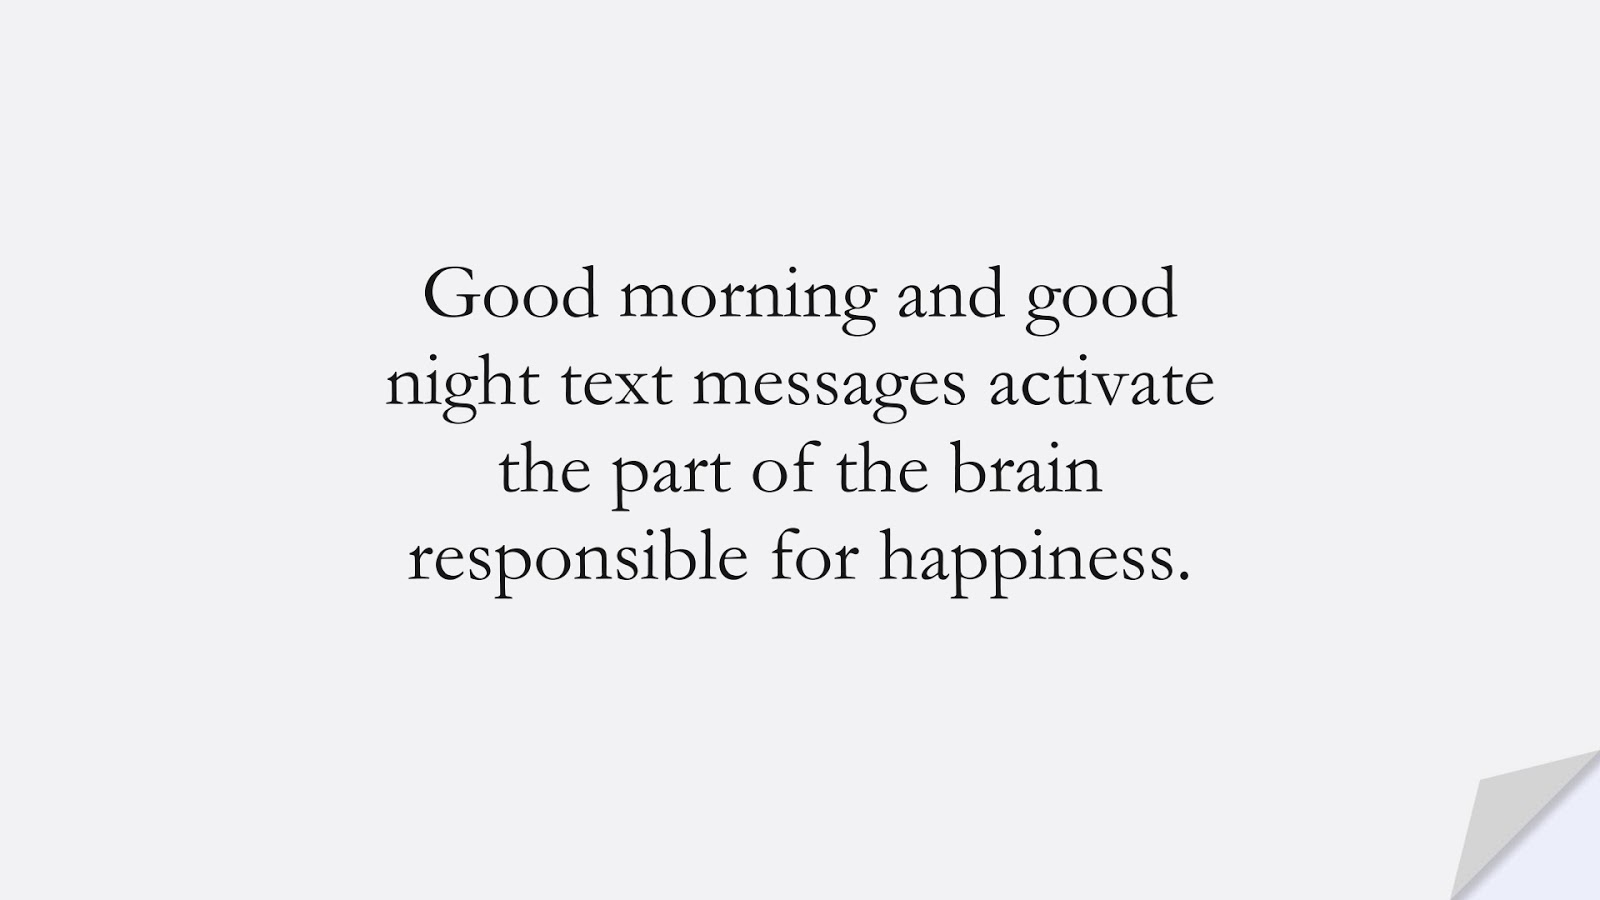 Good morning and good night text messages activate the part of the brain responsible for happiness.FALSE